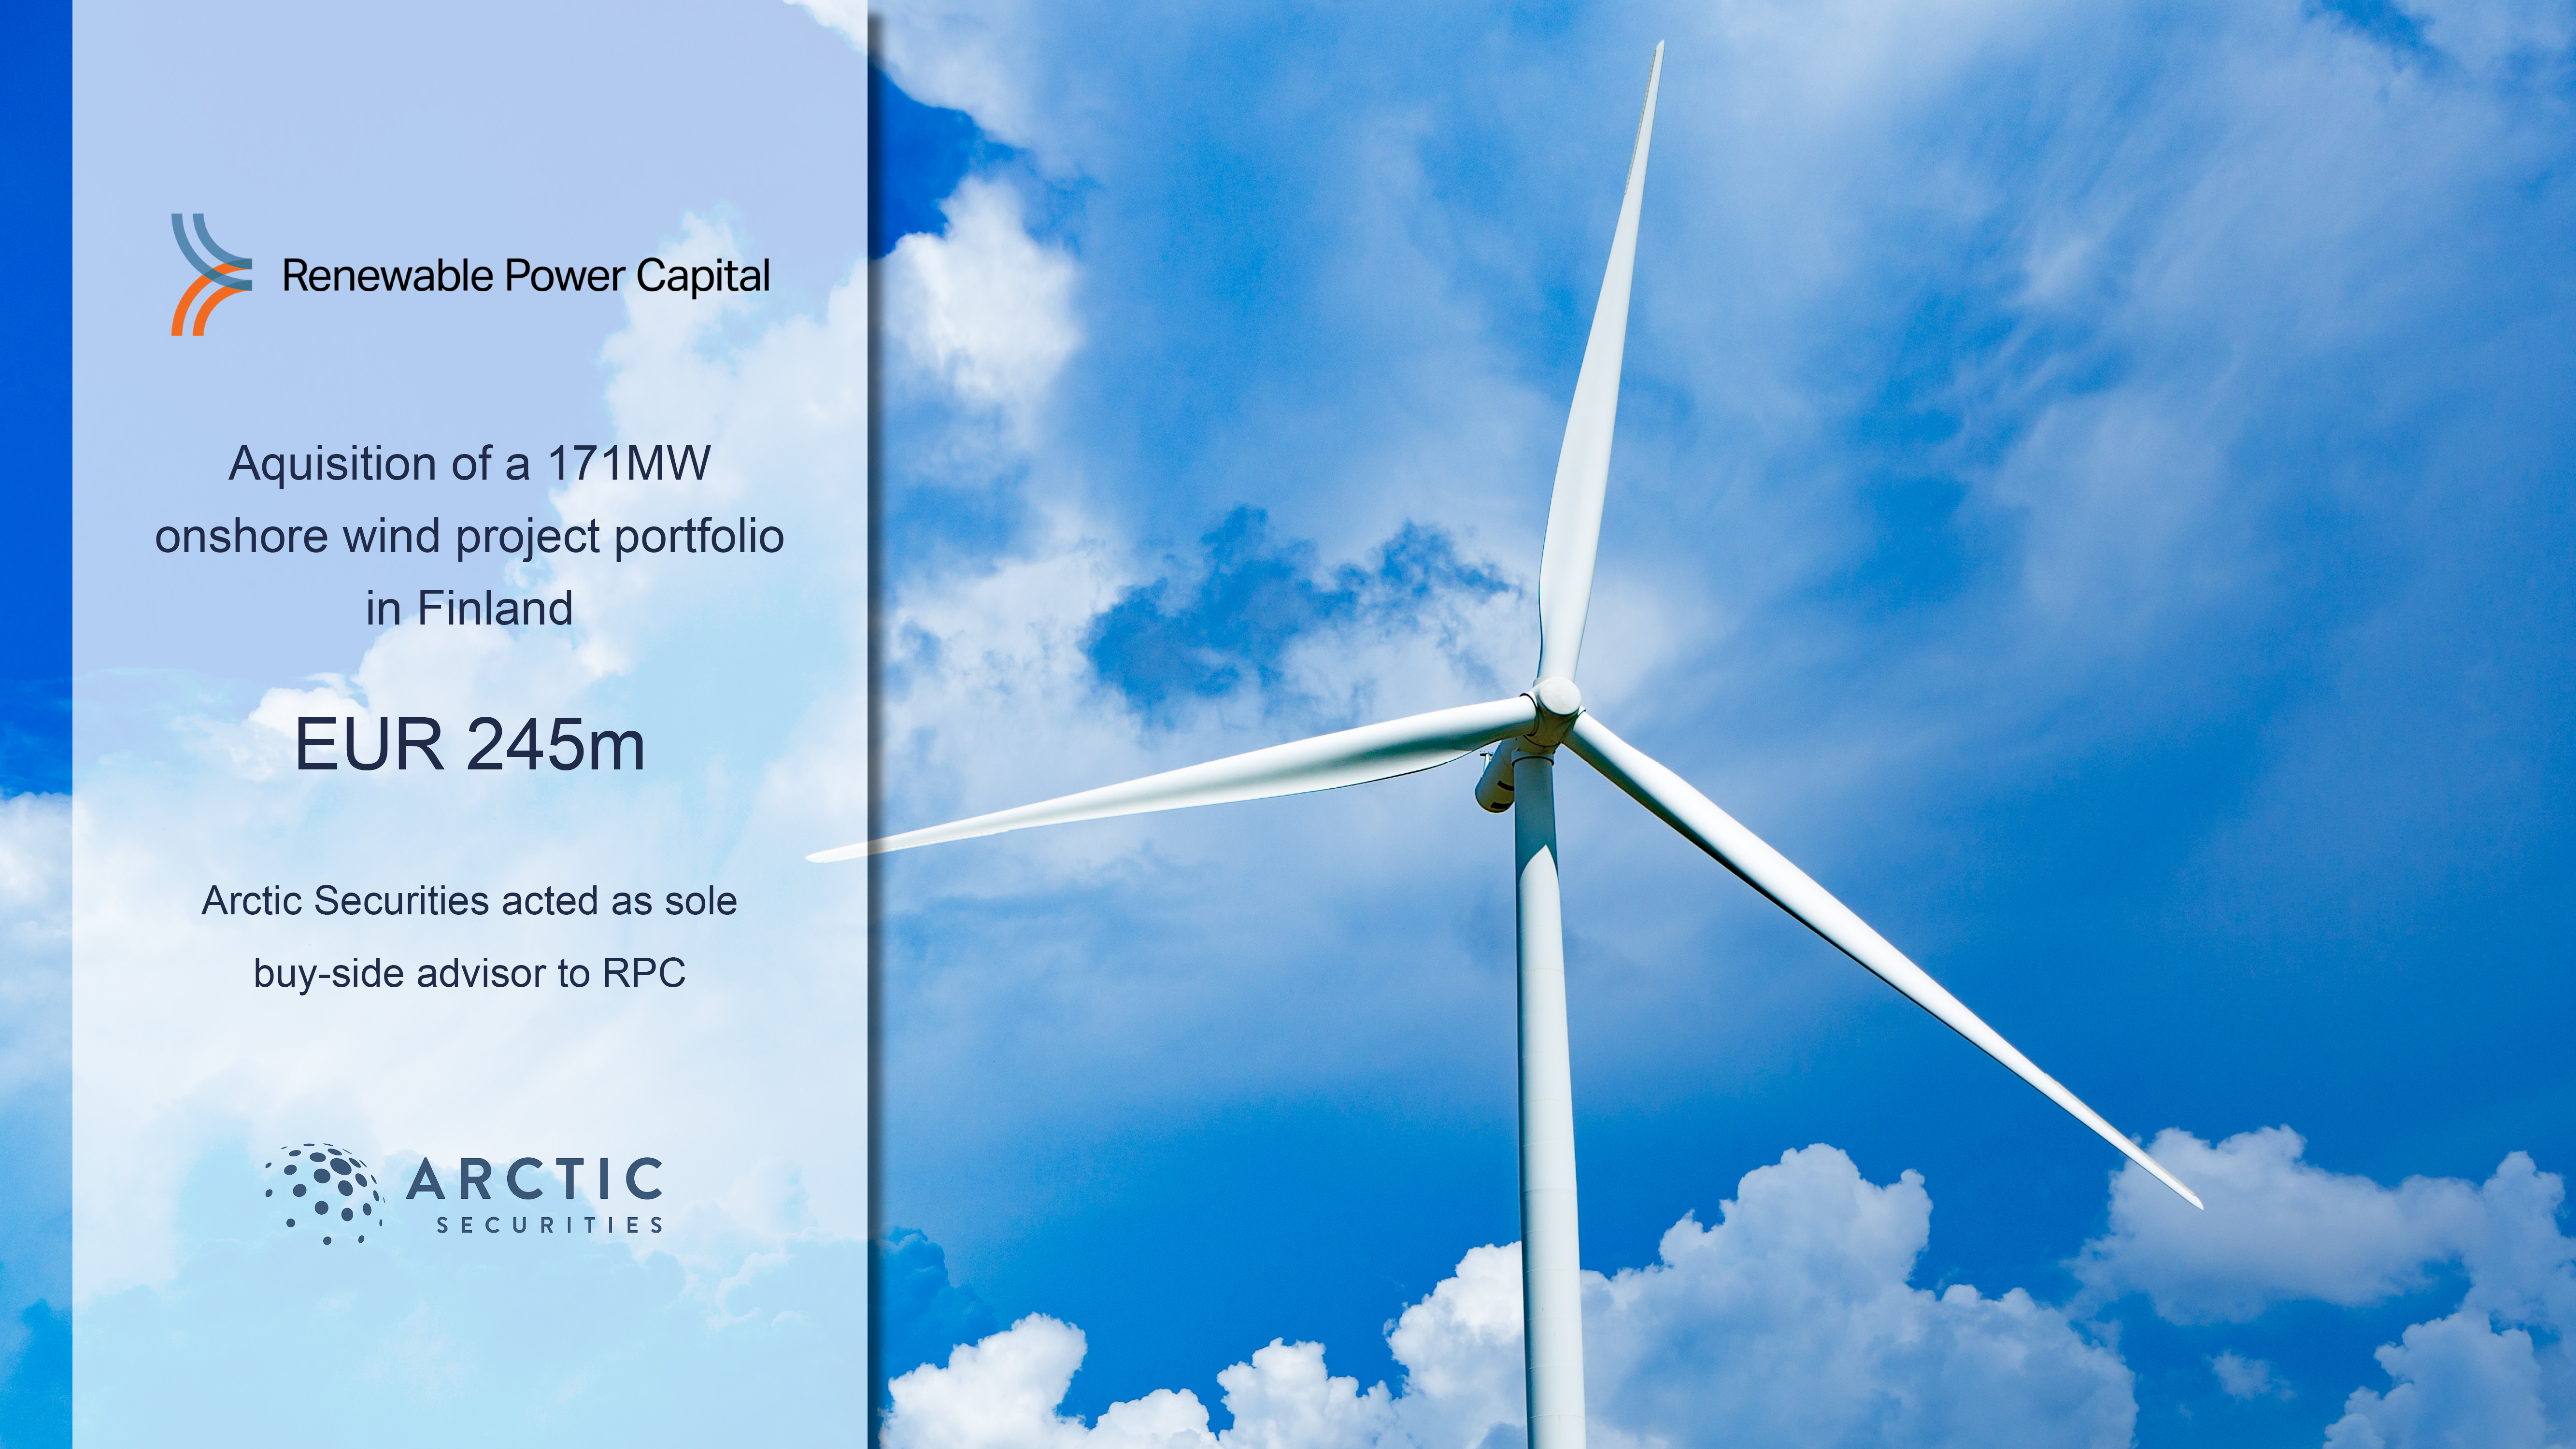 Buy-side advisor to RPC in the aquisition of a 171MW  onshore wind project portfolio in Finland